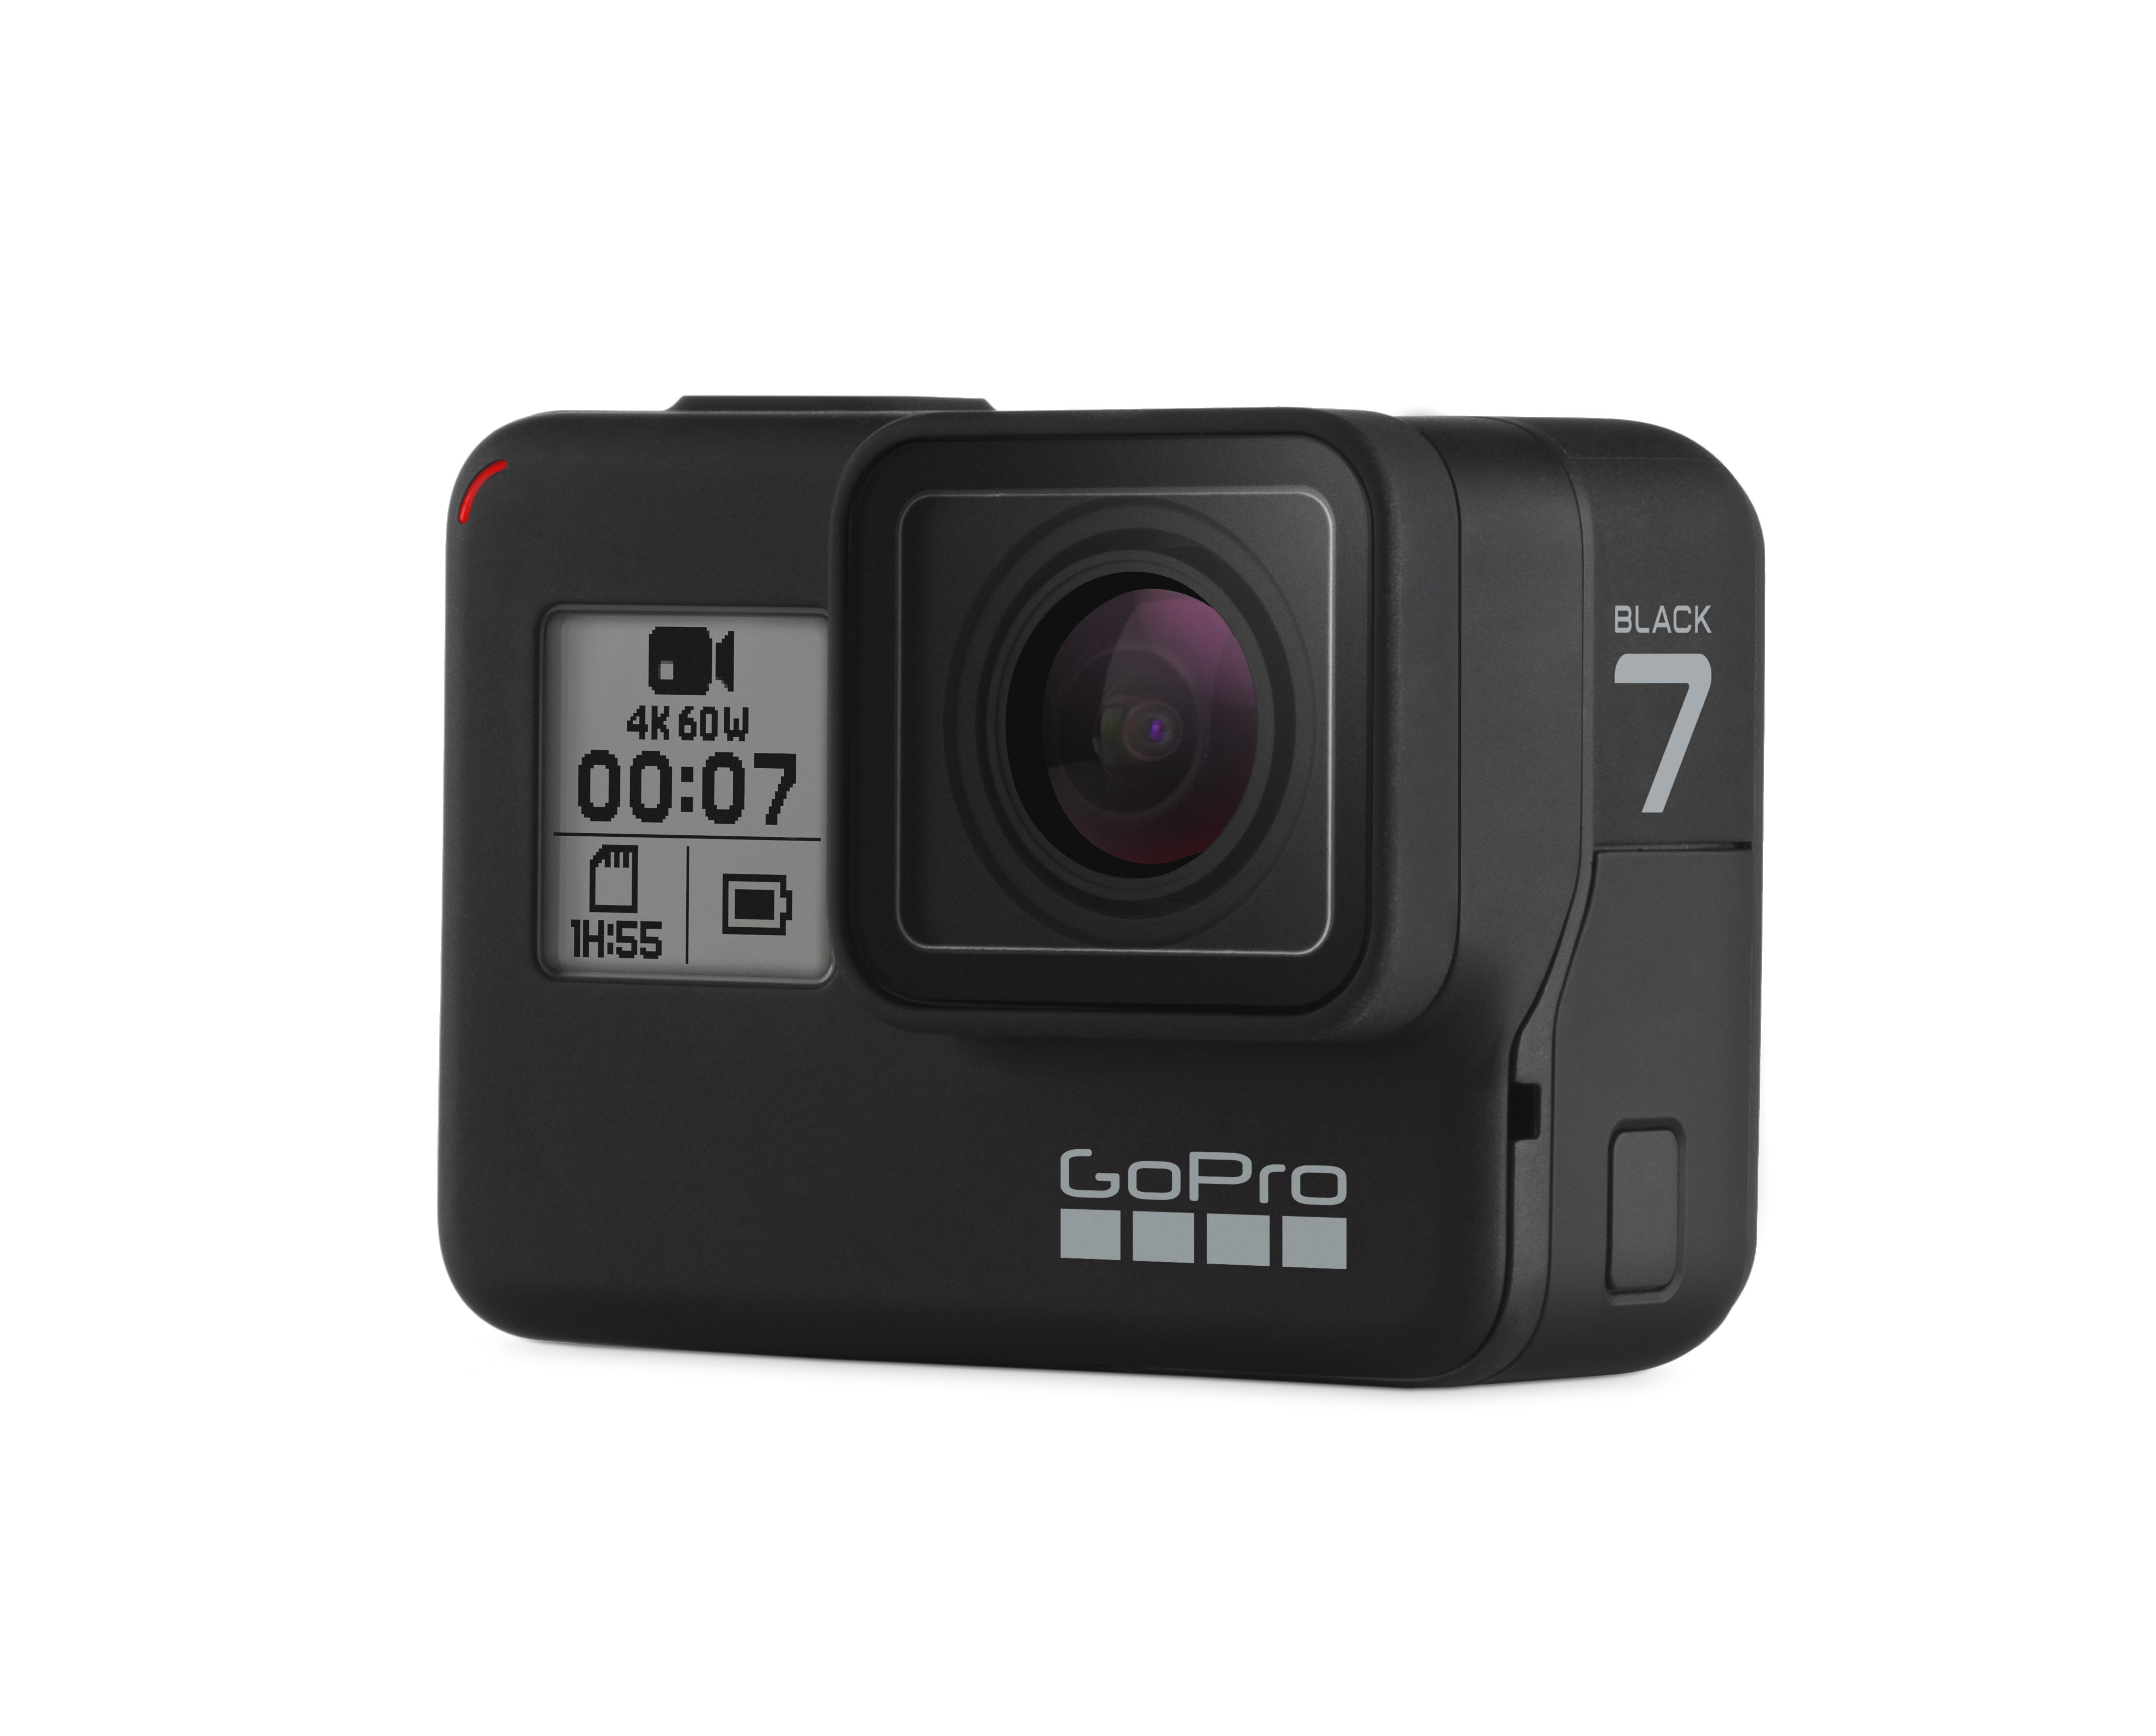 GoPro's Hero 7 Black sets a new bar for video stabilization - The Verge